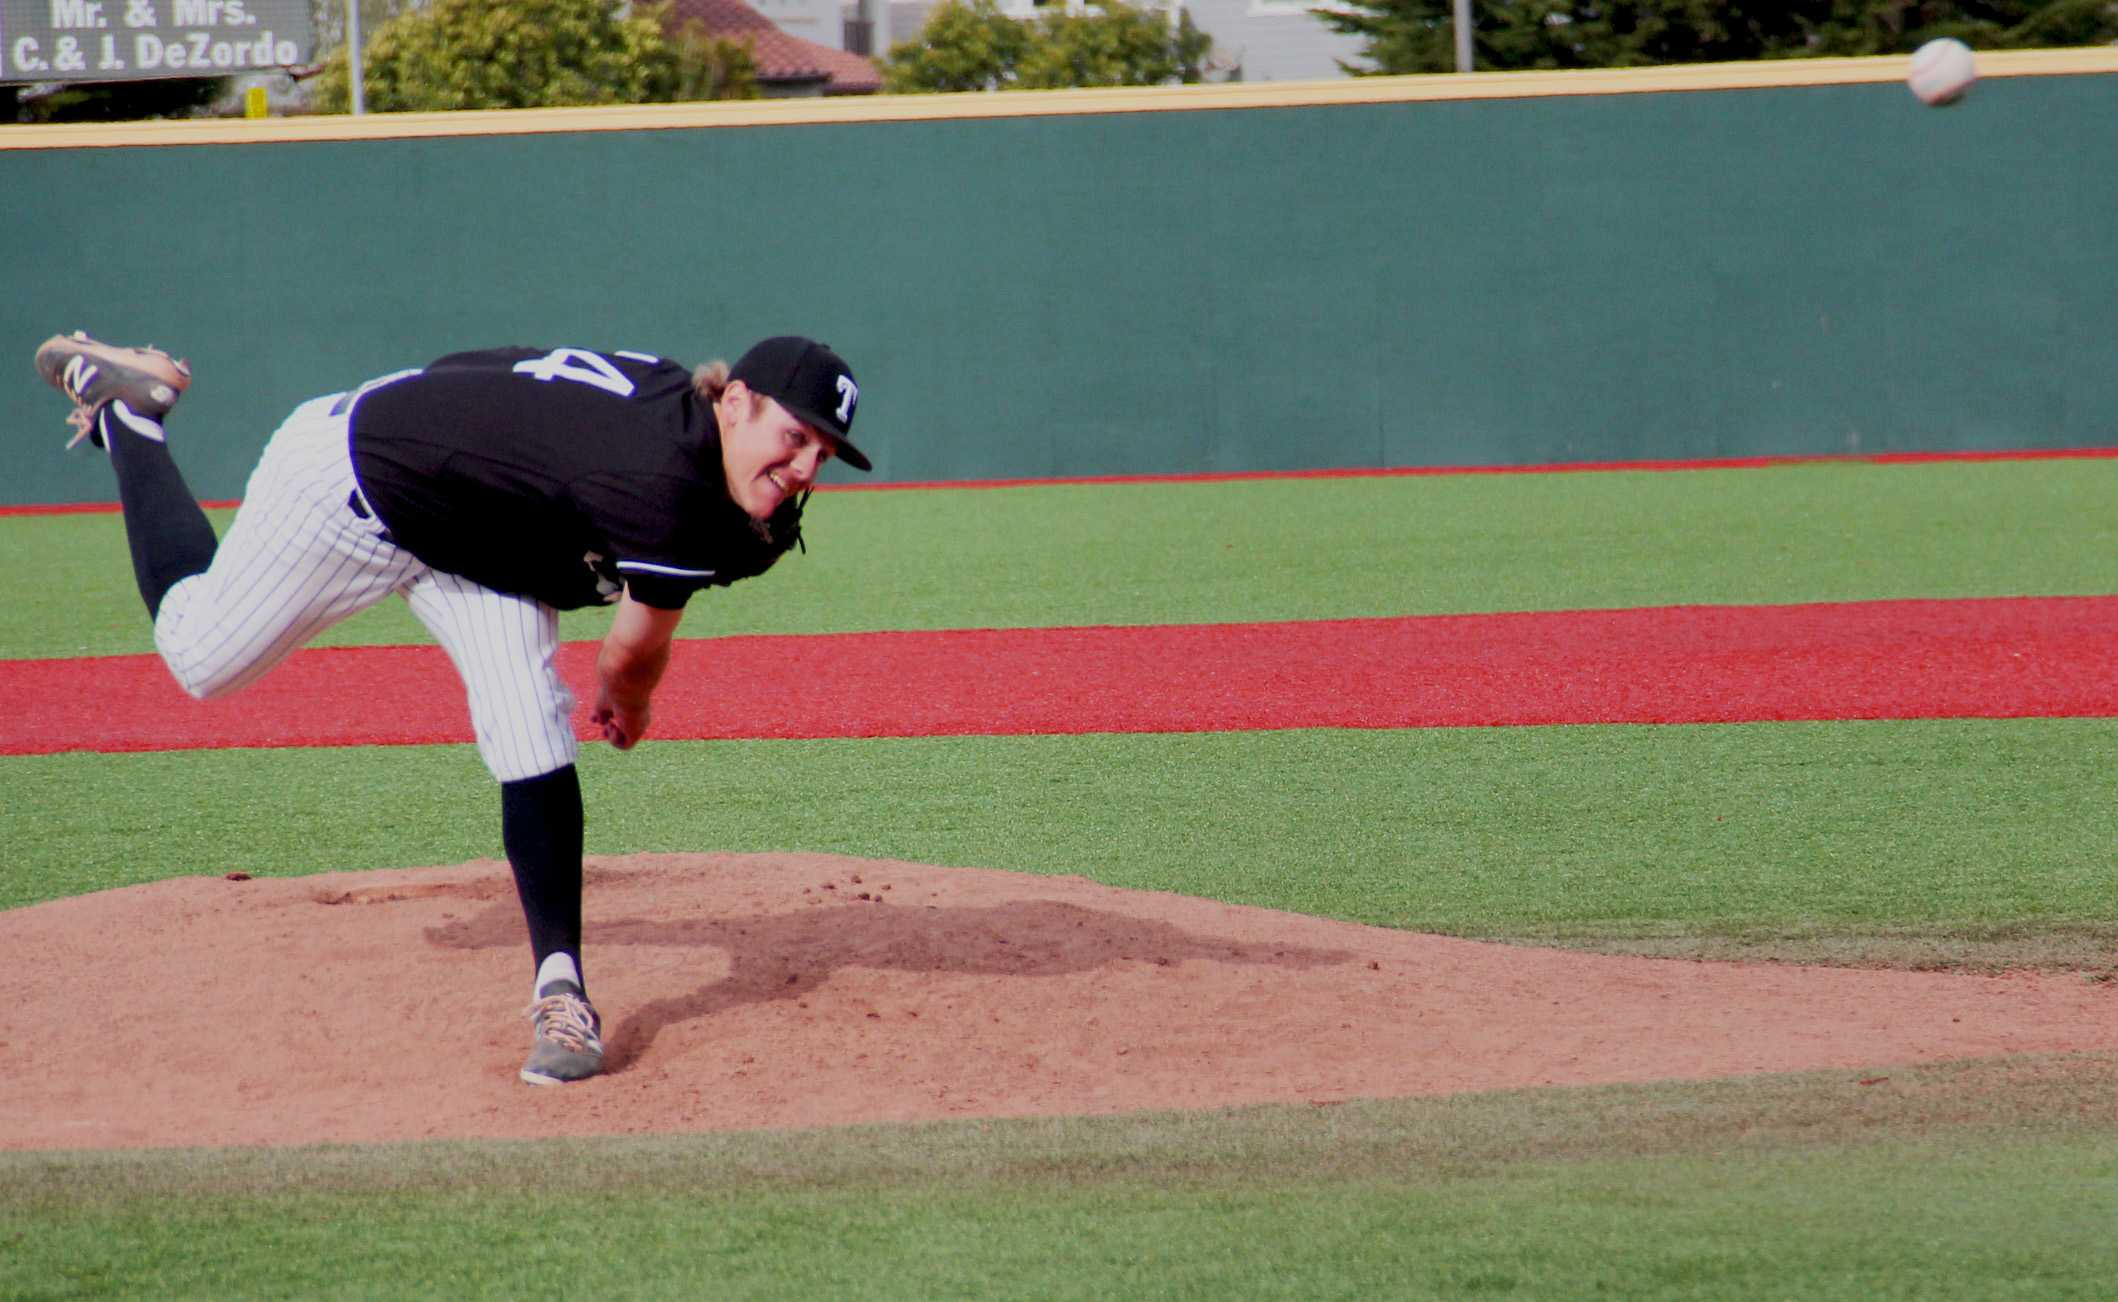 Joe Pratt strikes out two of the batters to close the seventh inning of March 16 at Skyline College.